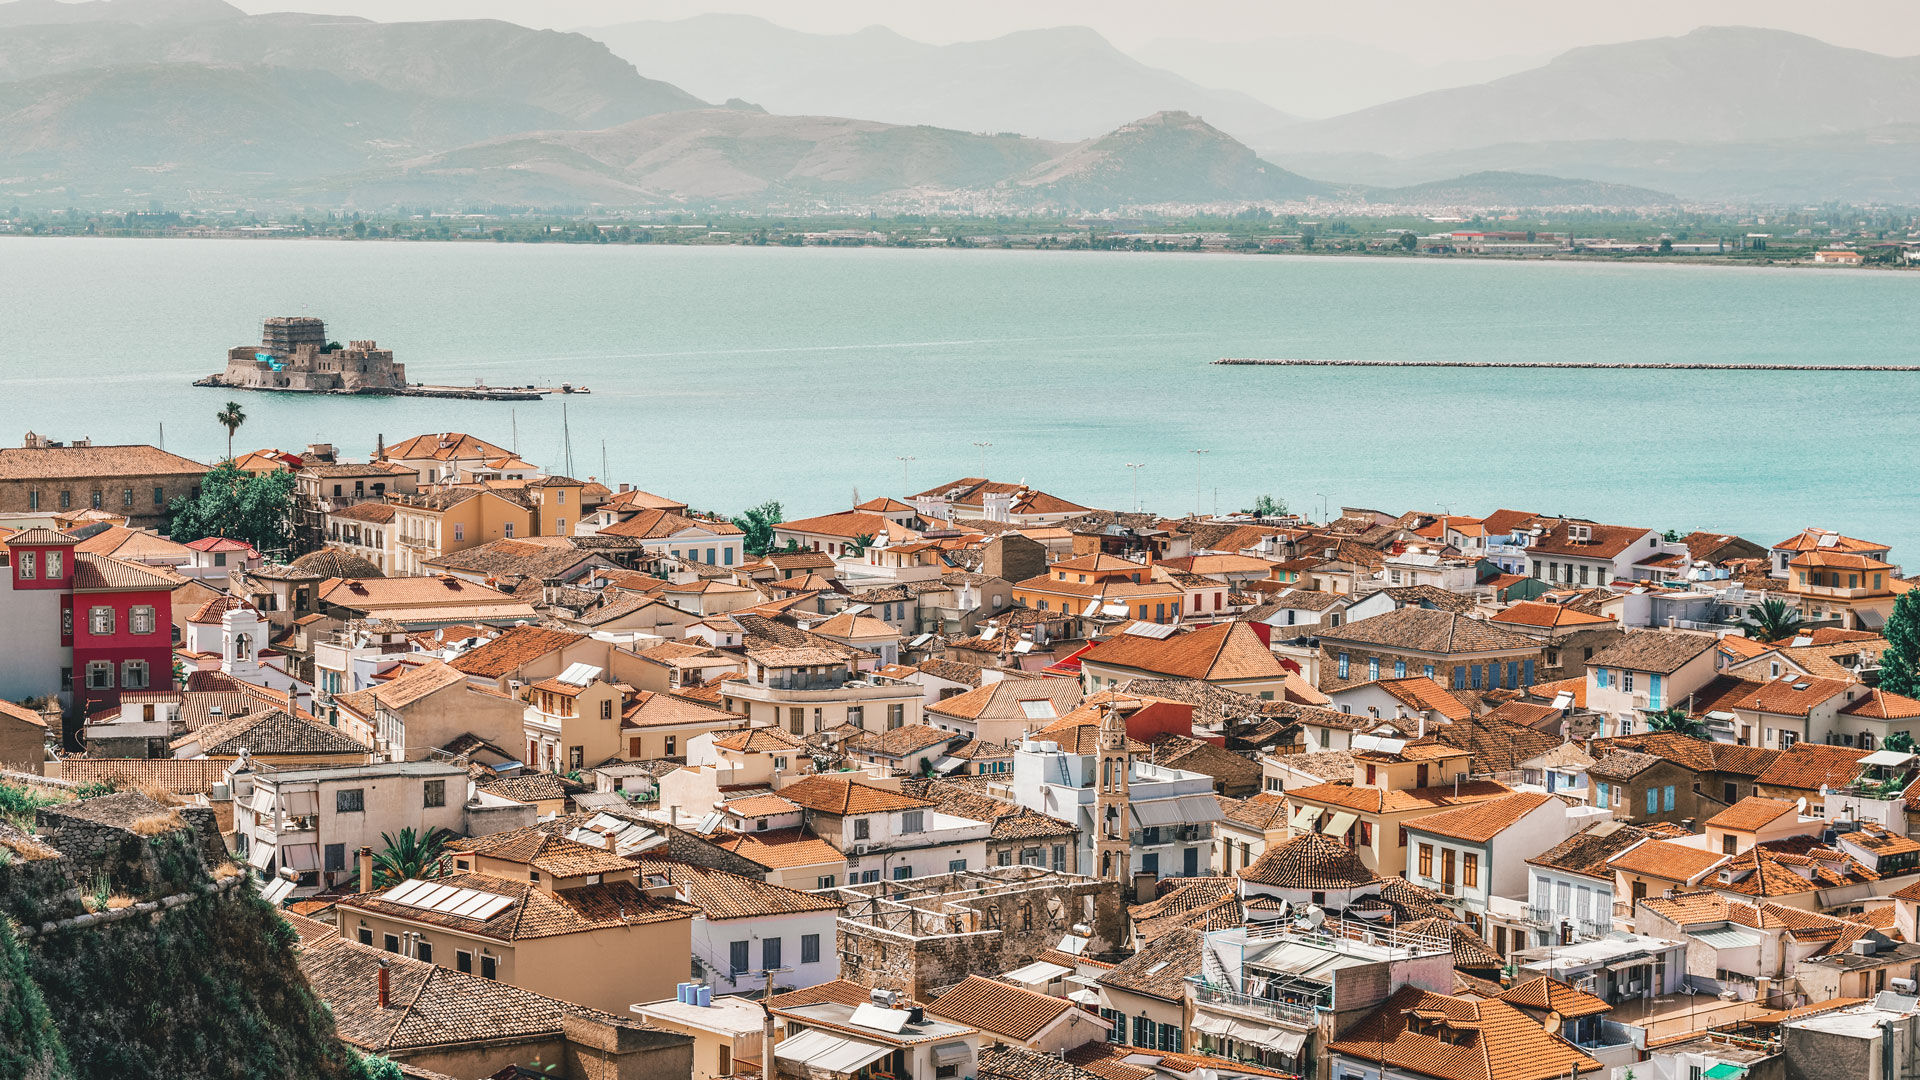 Nafplion town as seen from Palamidi Castle